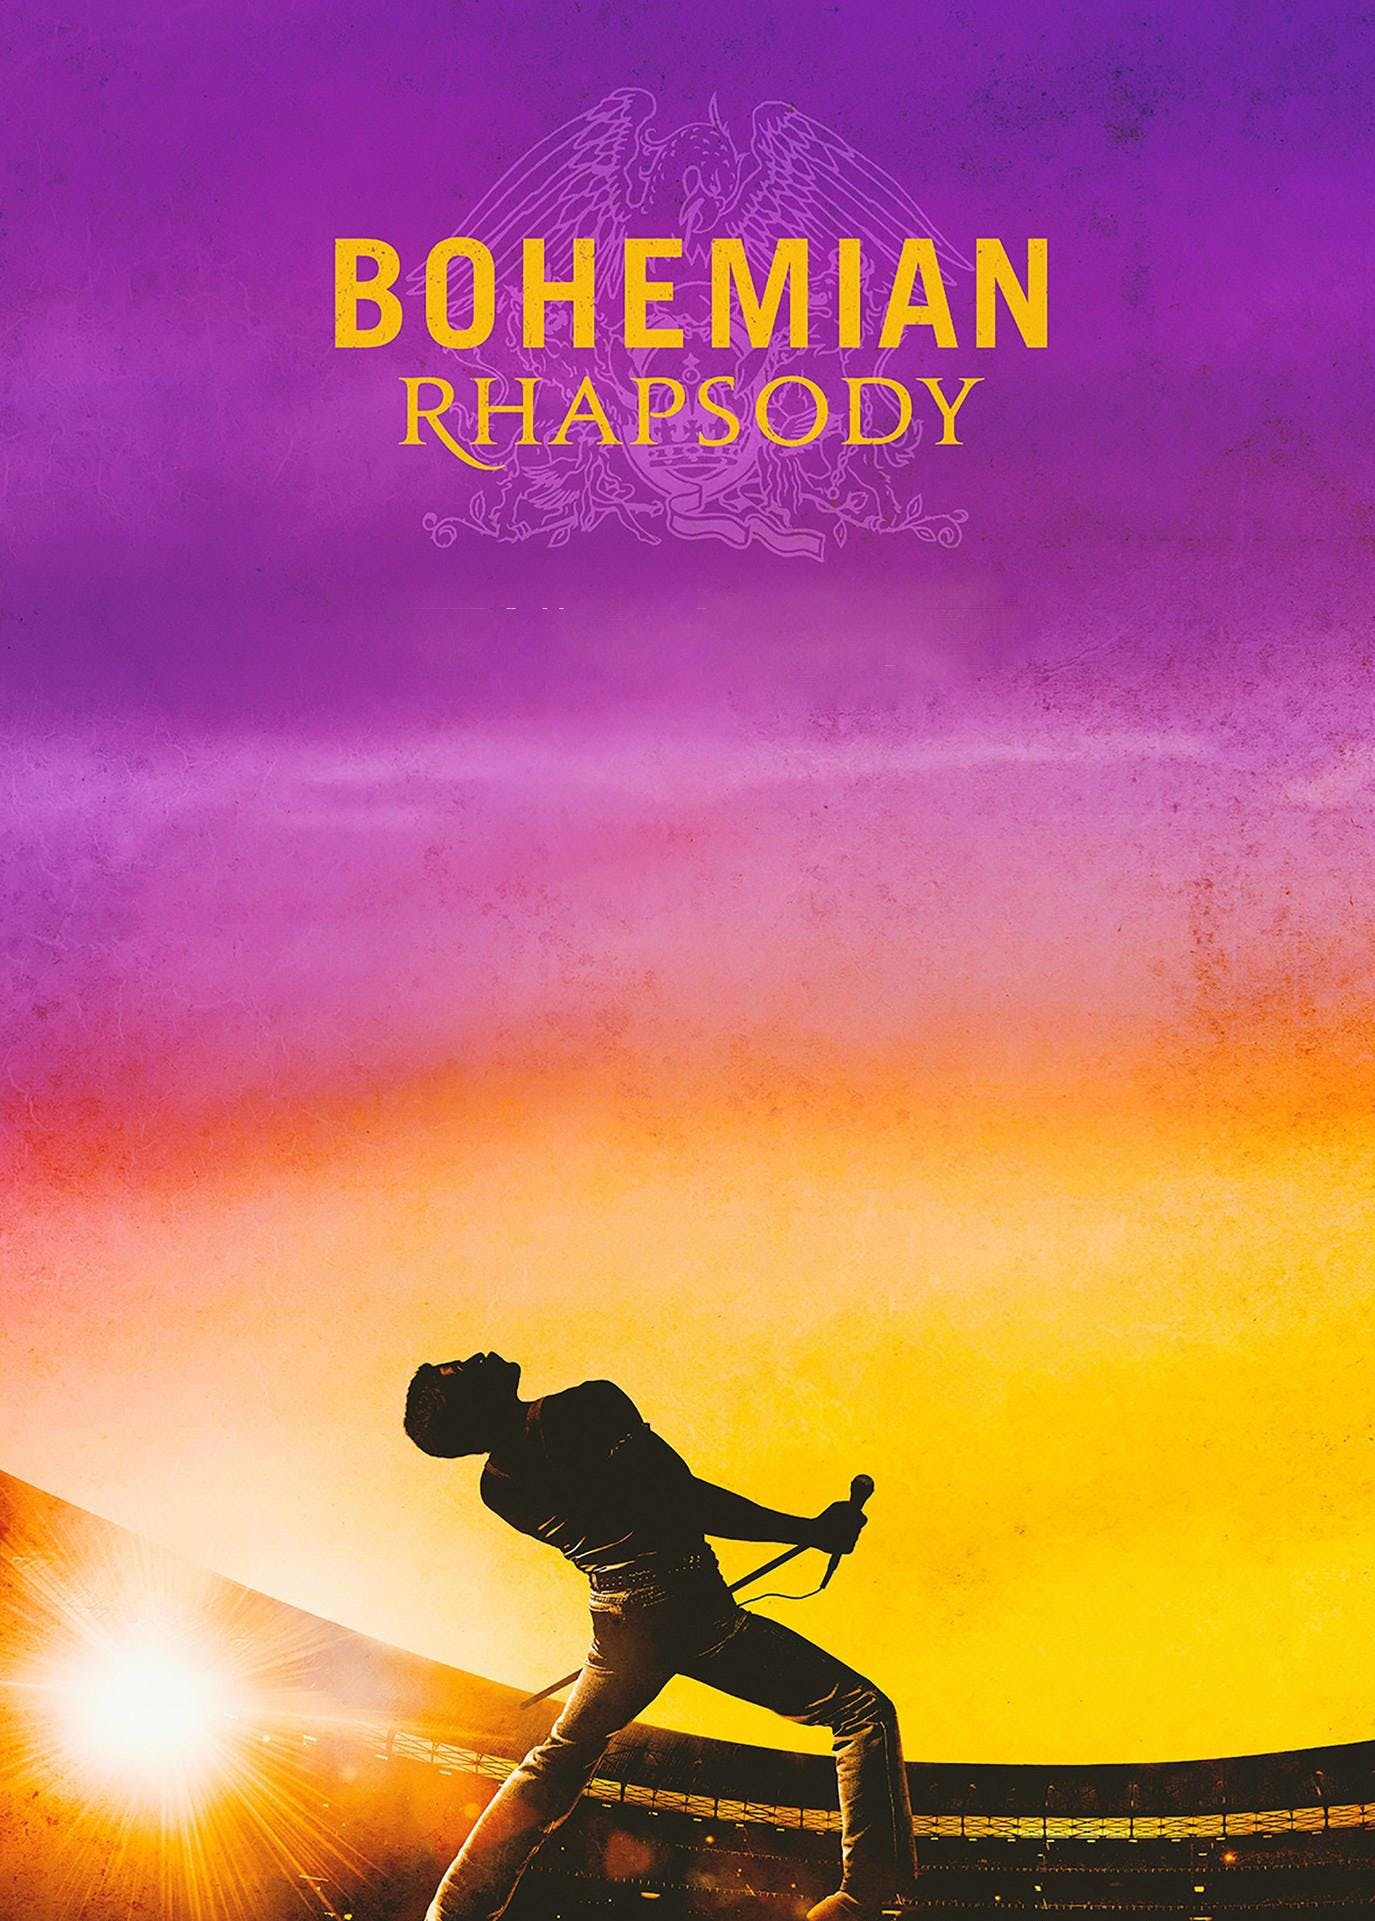 AfterLight Outdoor Cinema, Mold - Bohemian Rhapsody (12A)